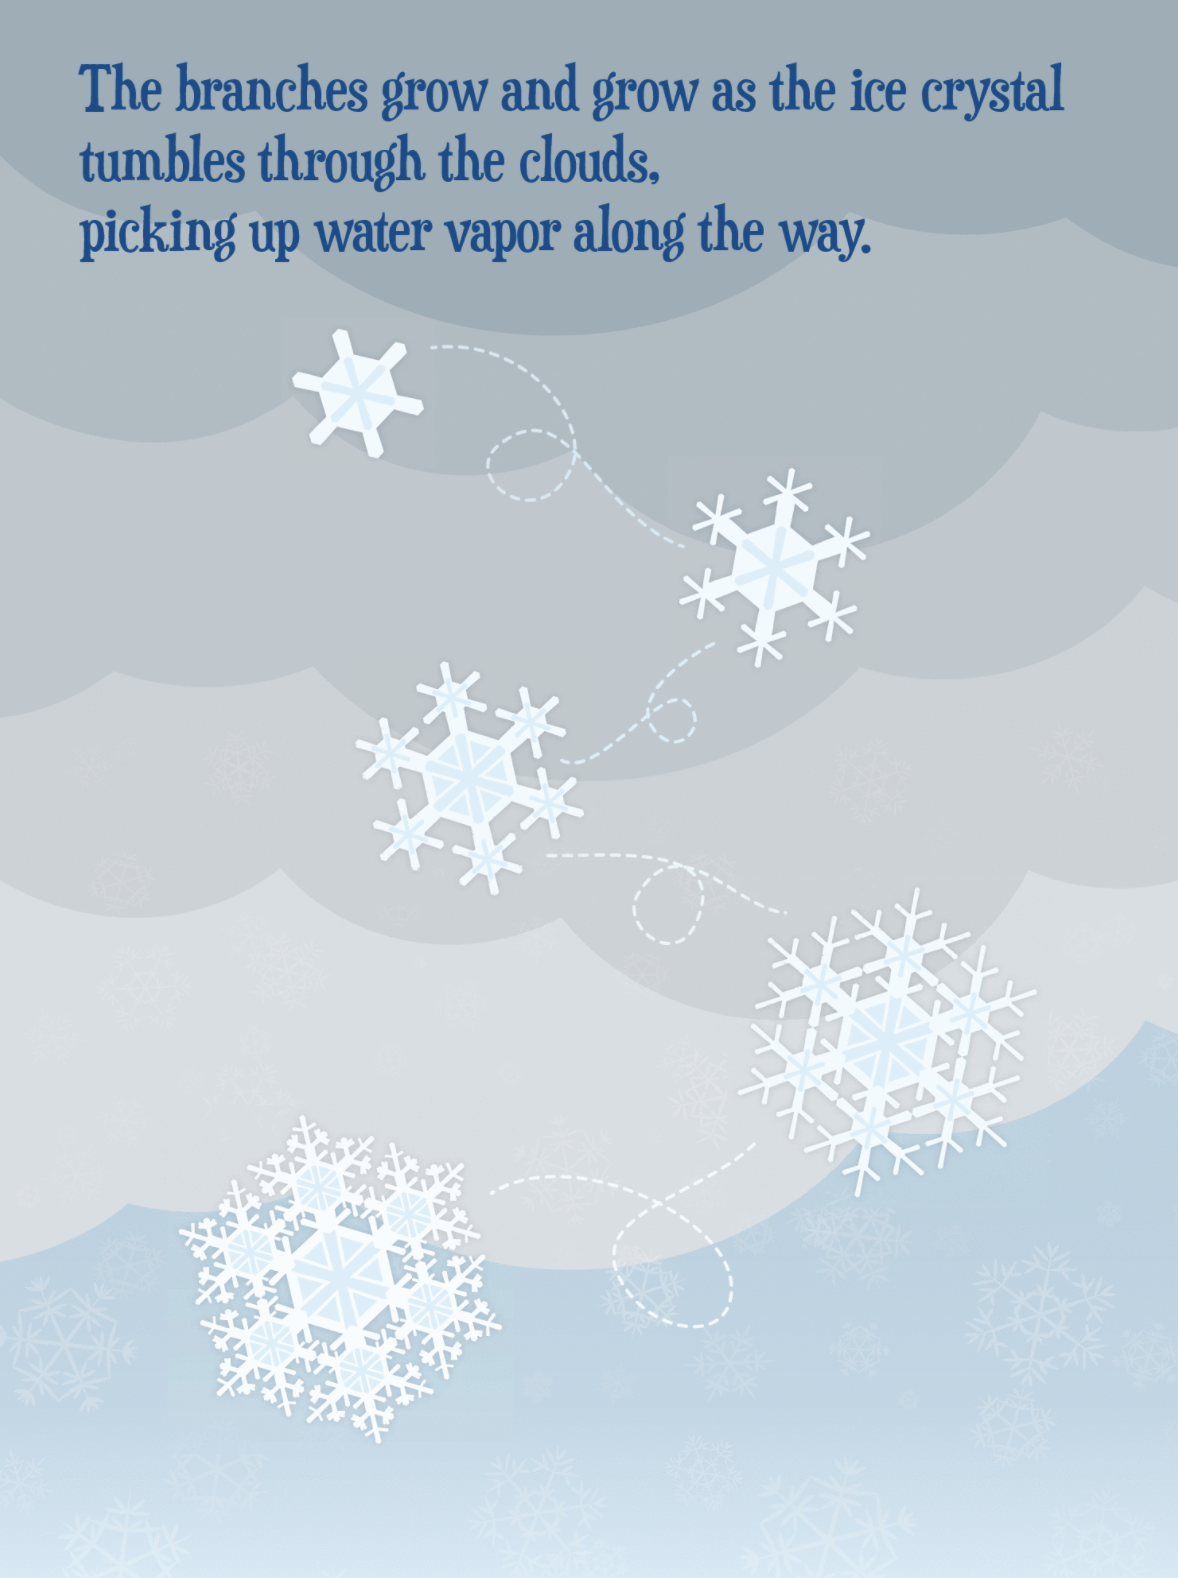 Drawing of five snowflakes falling from the sky. Text reads: The branches grow and grow as the ice crystal tumbles through the clouds, picking up water vapor along the way.